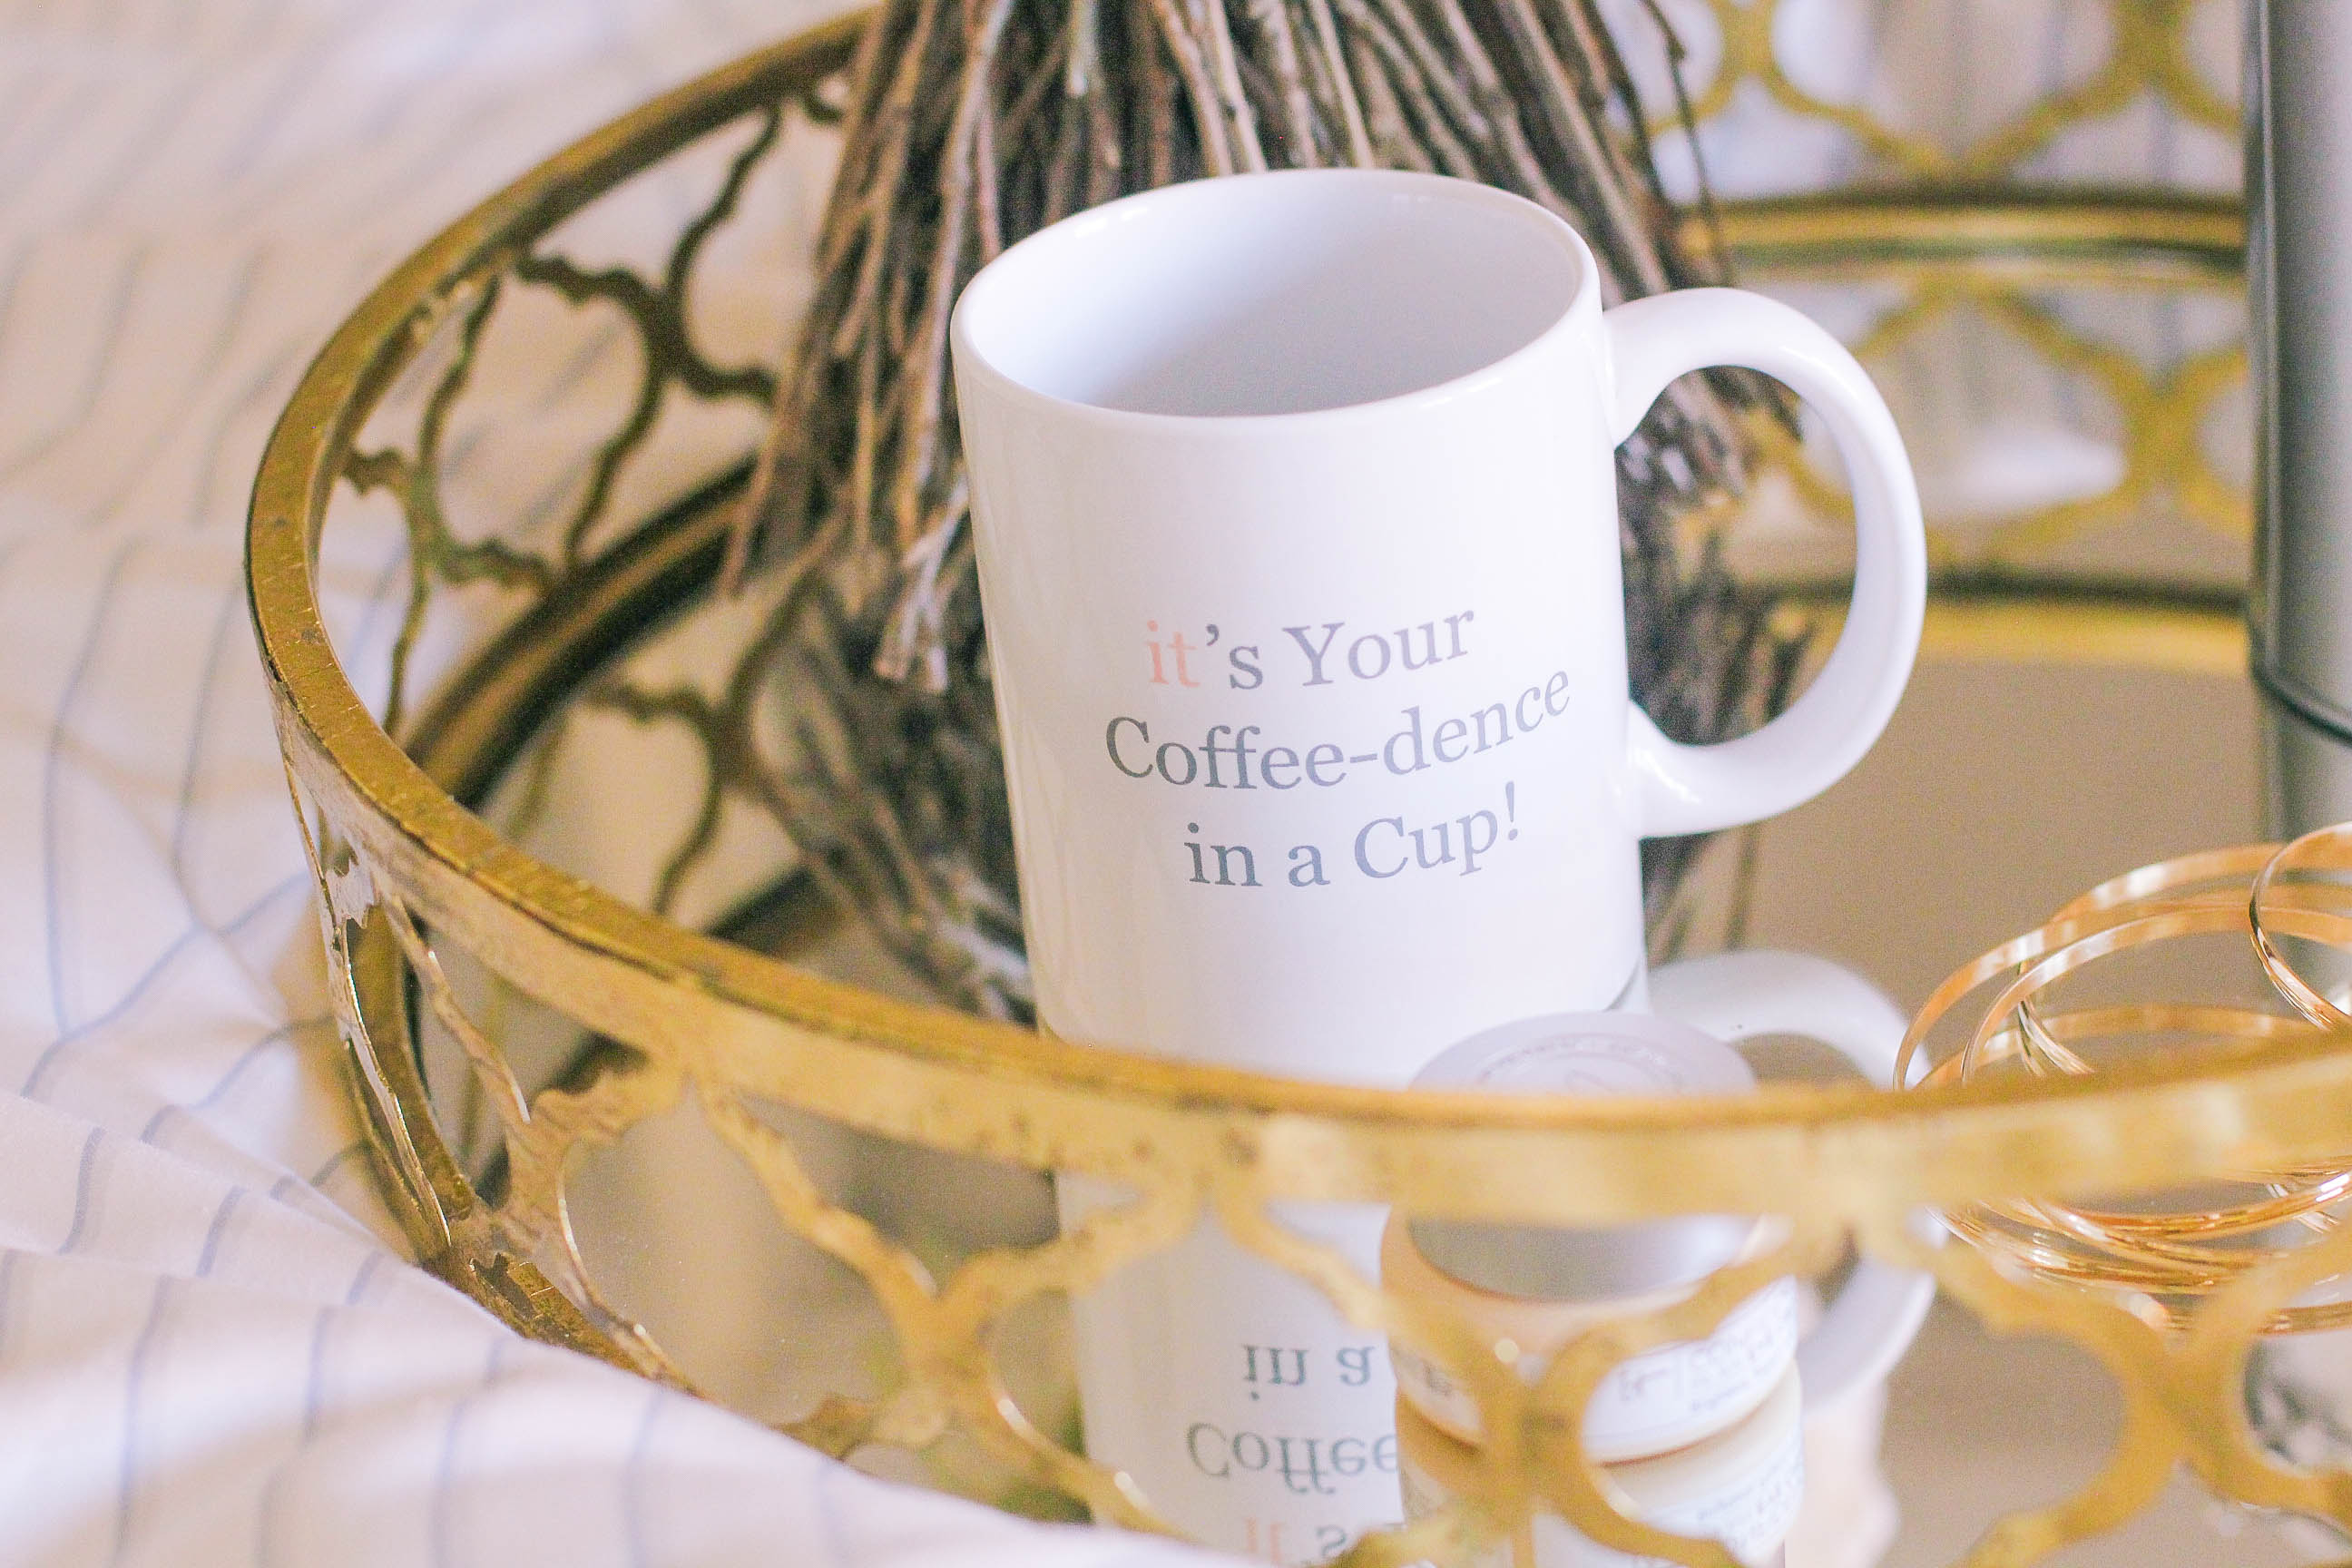 missyonmadison, it cosmetics, coffee, morning coffee, rainy day in, breakfast in bed, rainy day in bed, coffee mug, gold butler tray, melissa tierney, missyonmadison instagram, la blogger, bloglovin,